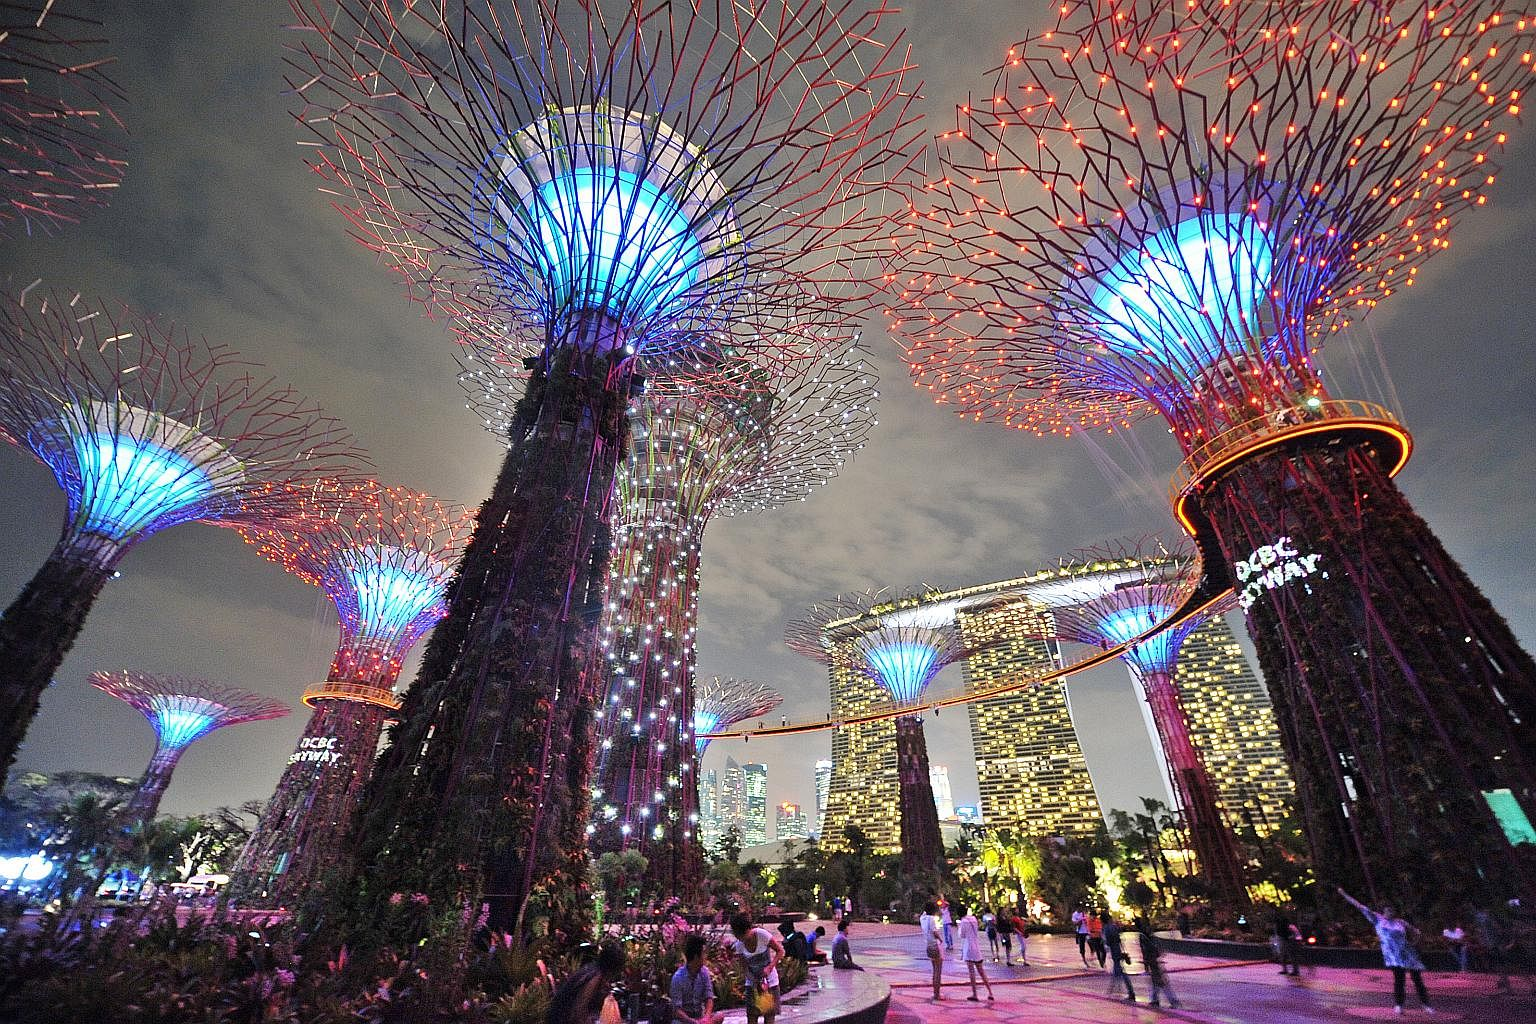 Expats Vote Singapore The Best Place In World To Live And Work Economy News Top Stories